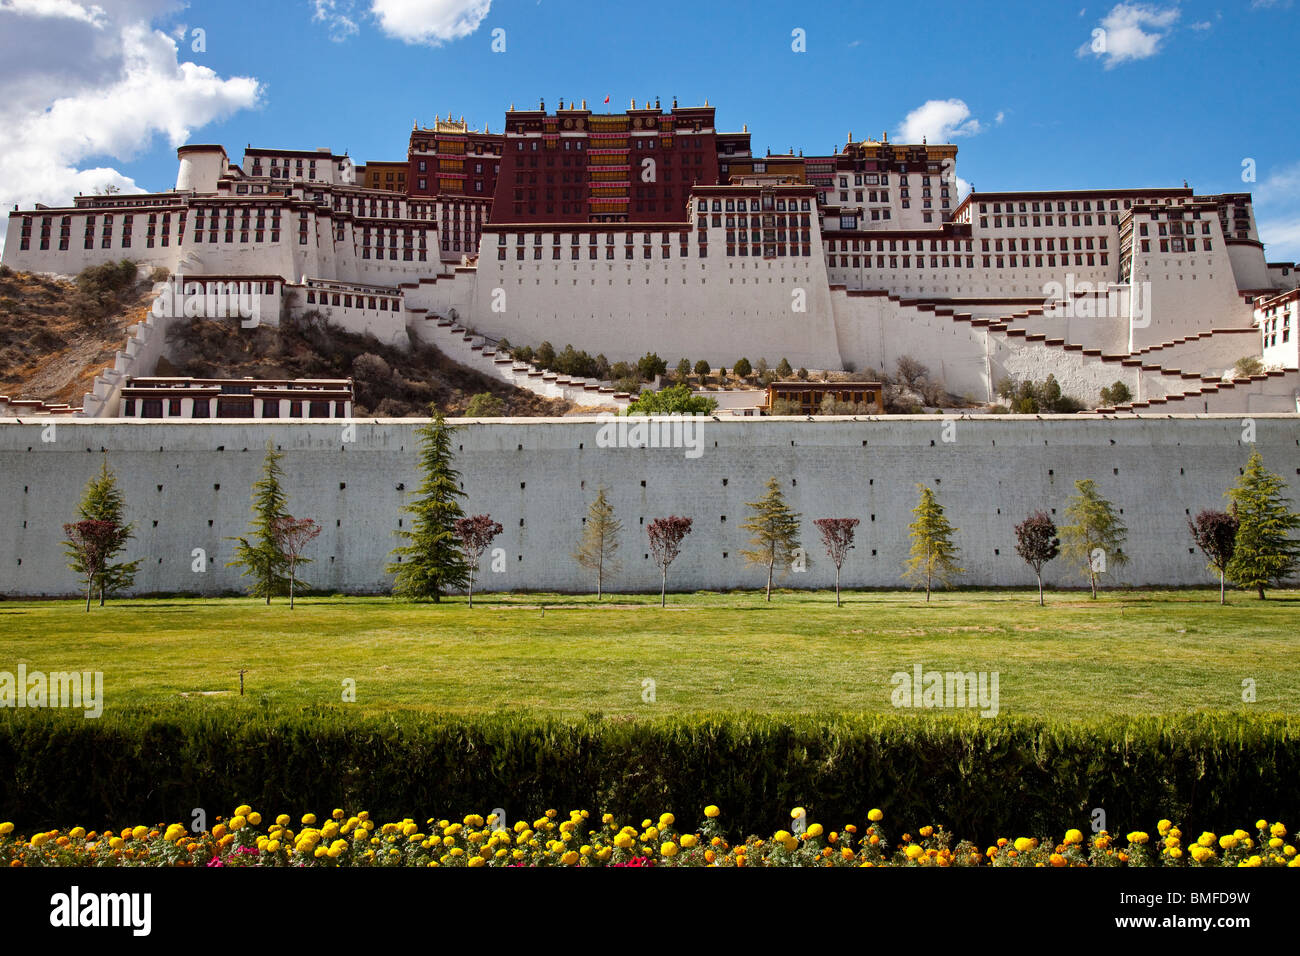 Potala Palace in Lhasa, Tibet - Stock Image